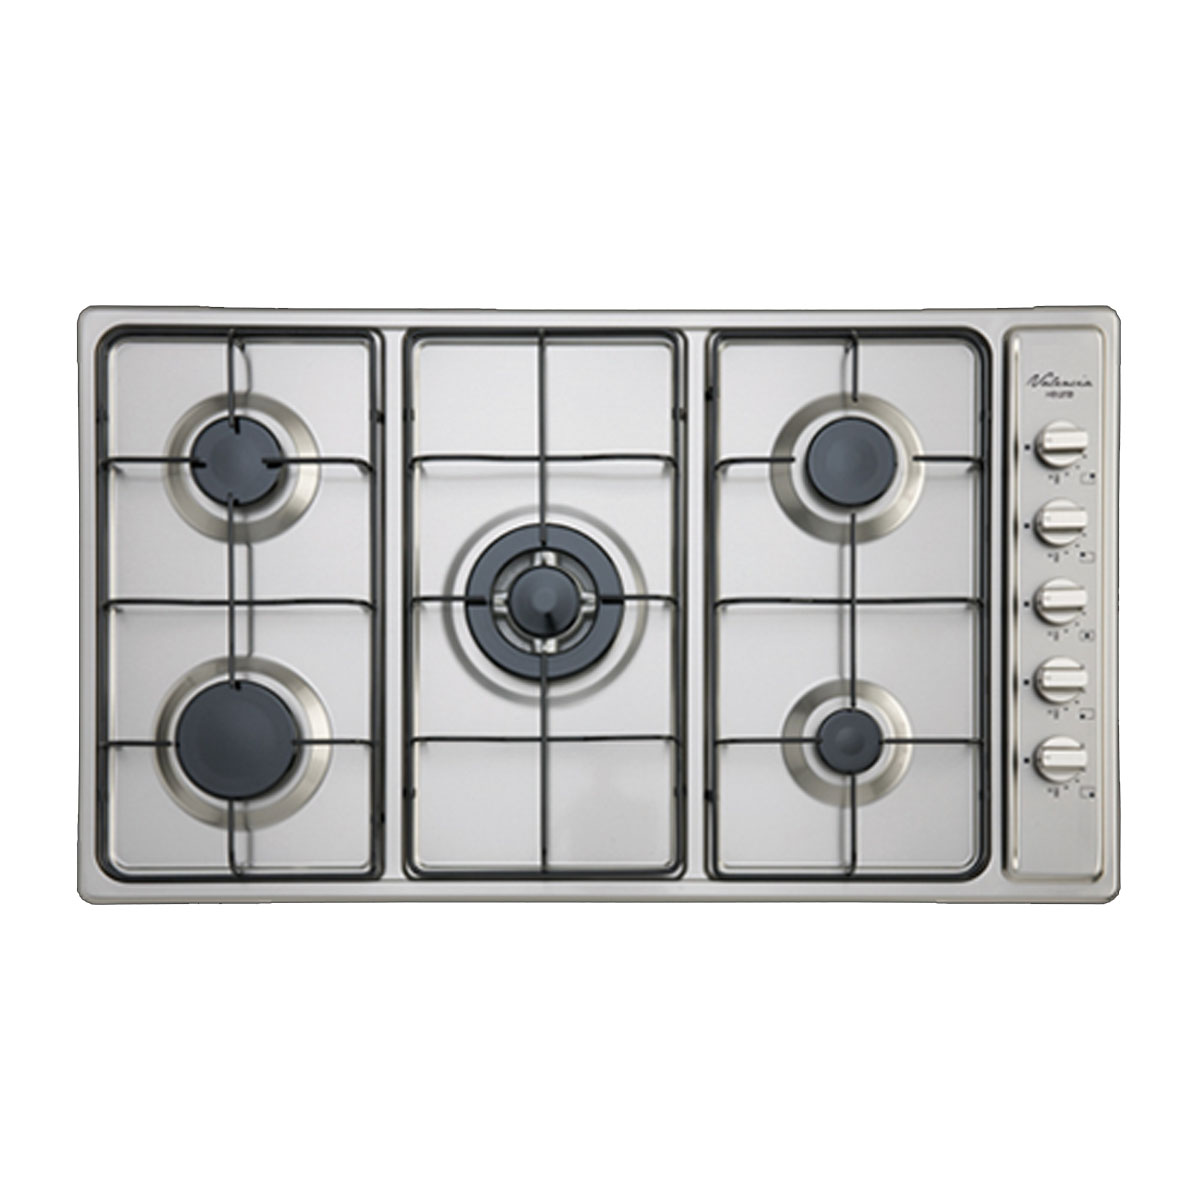 Euro Appliances 90cm Gas Cooktop EGZ90GSV